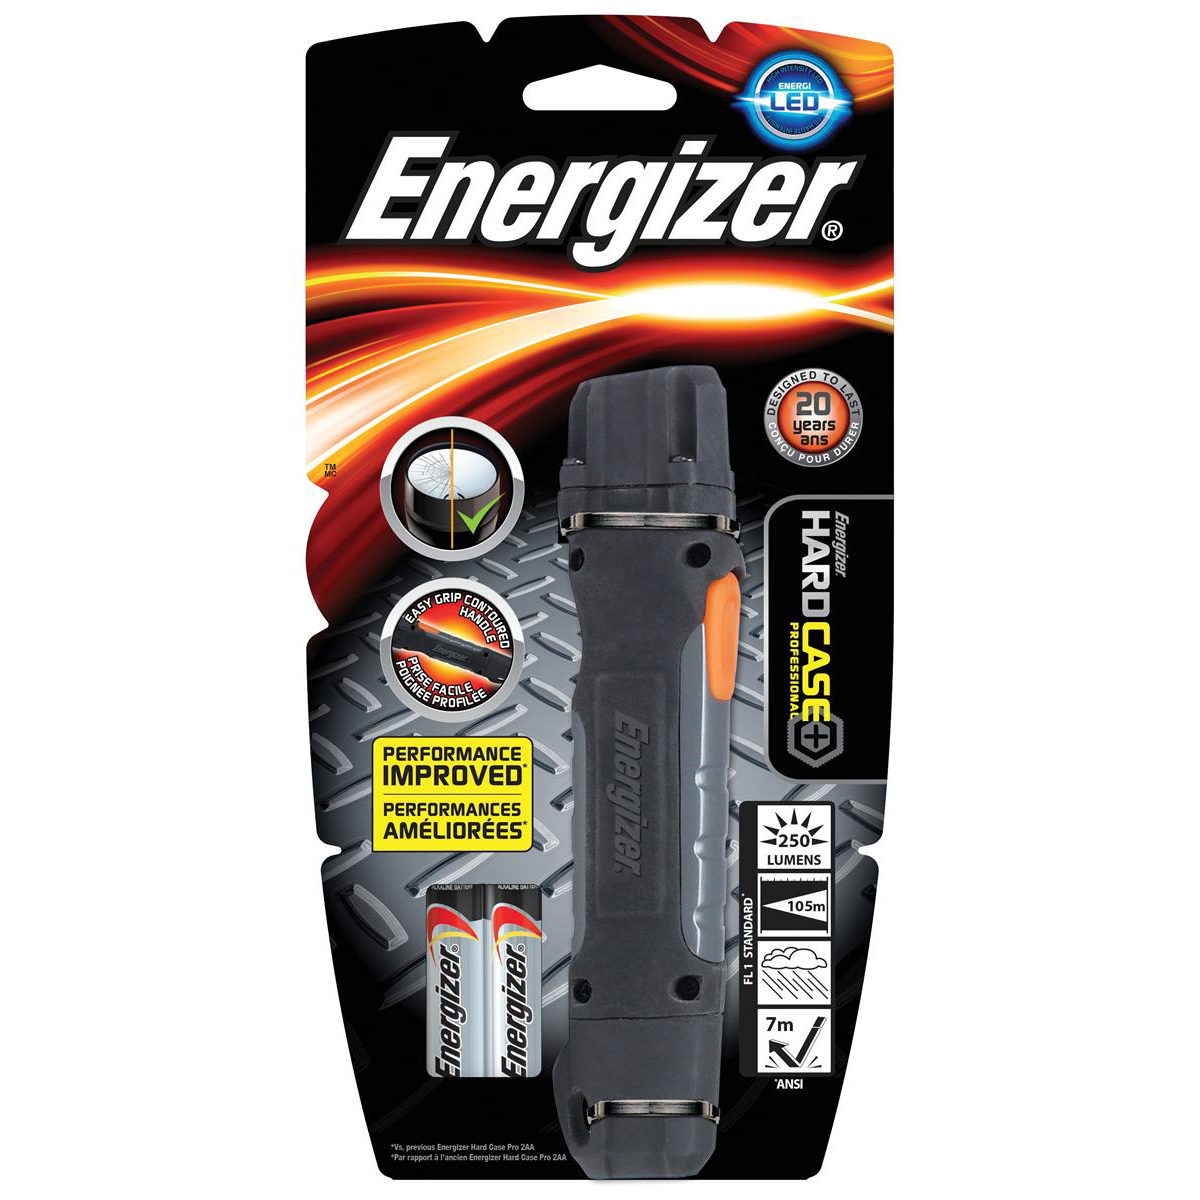 Energizer Hardcase Pro 2 LED Rubber Cased Torch Weatherproof AA Ref 639618